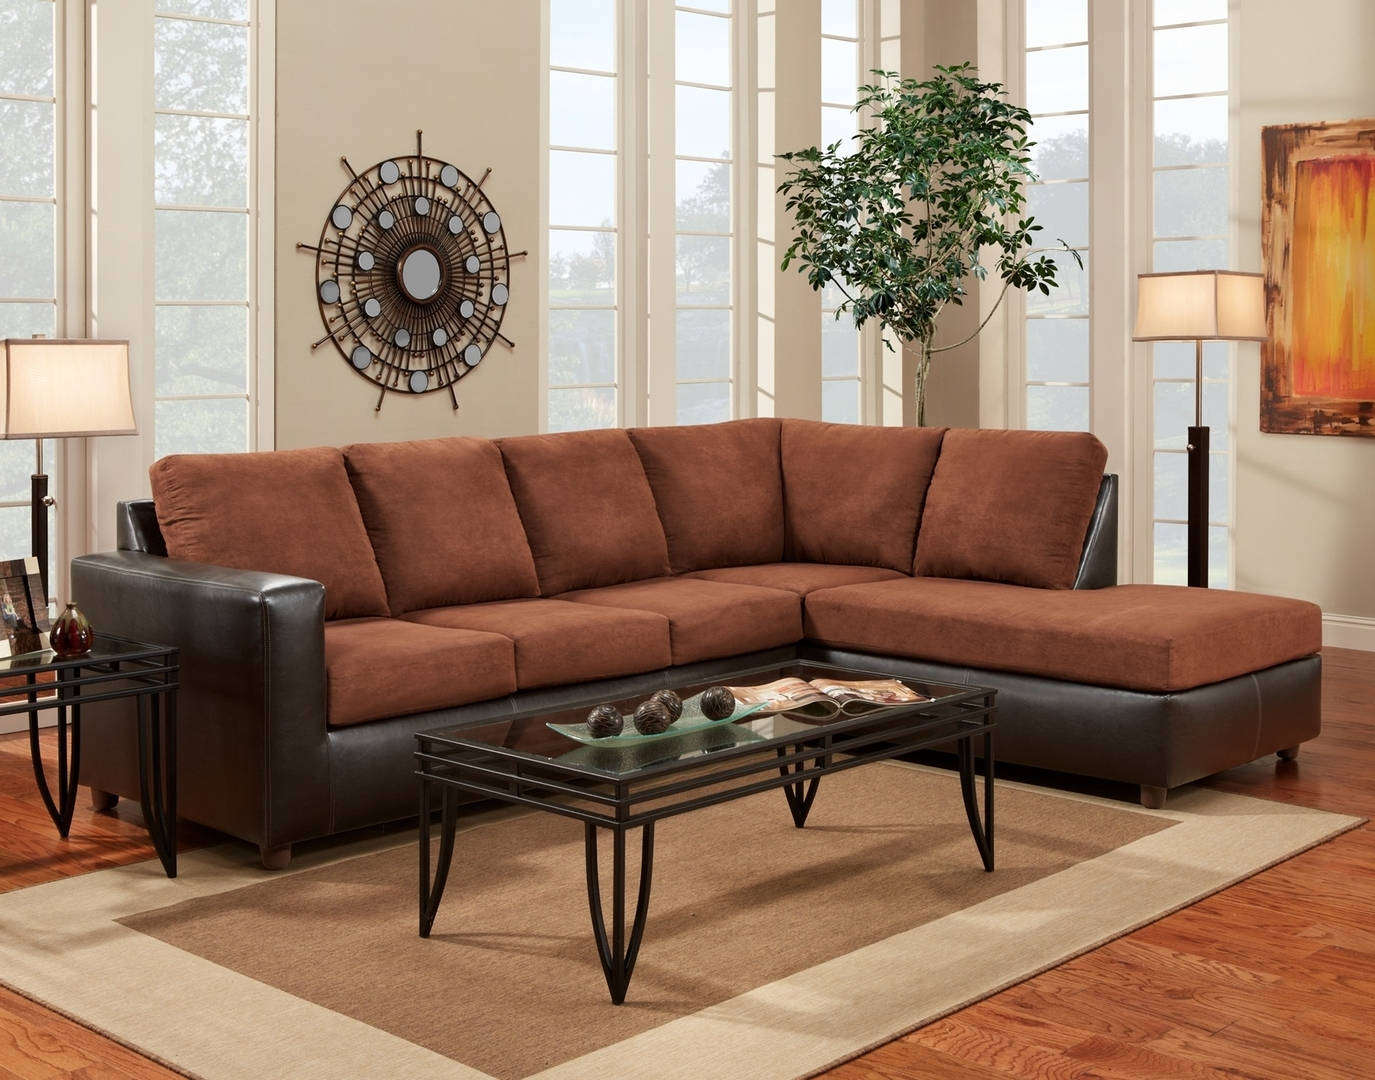 Widely Used Sectionals: Tuscaloosa, Al: Southeastern Furniture In Tuscaloosa Sectional Sofas (View 19 of 20)